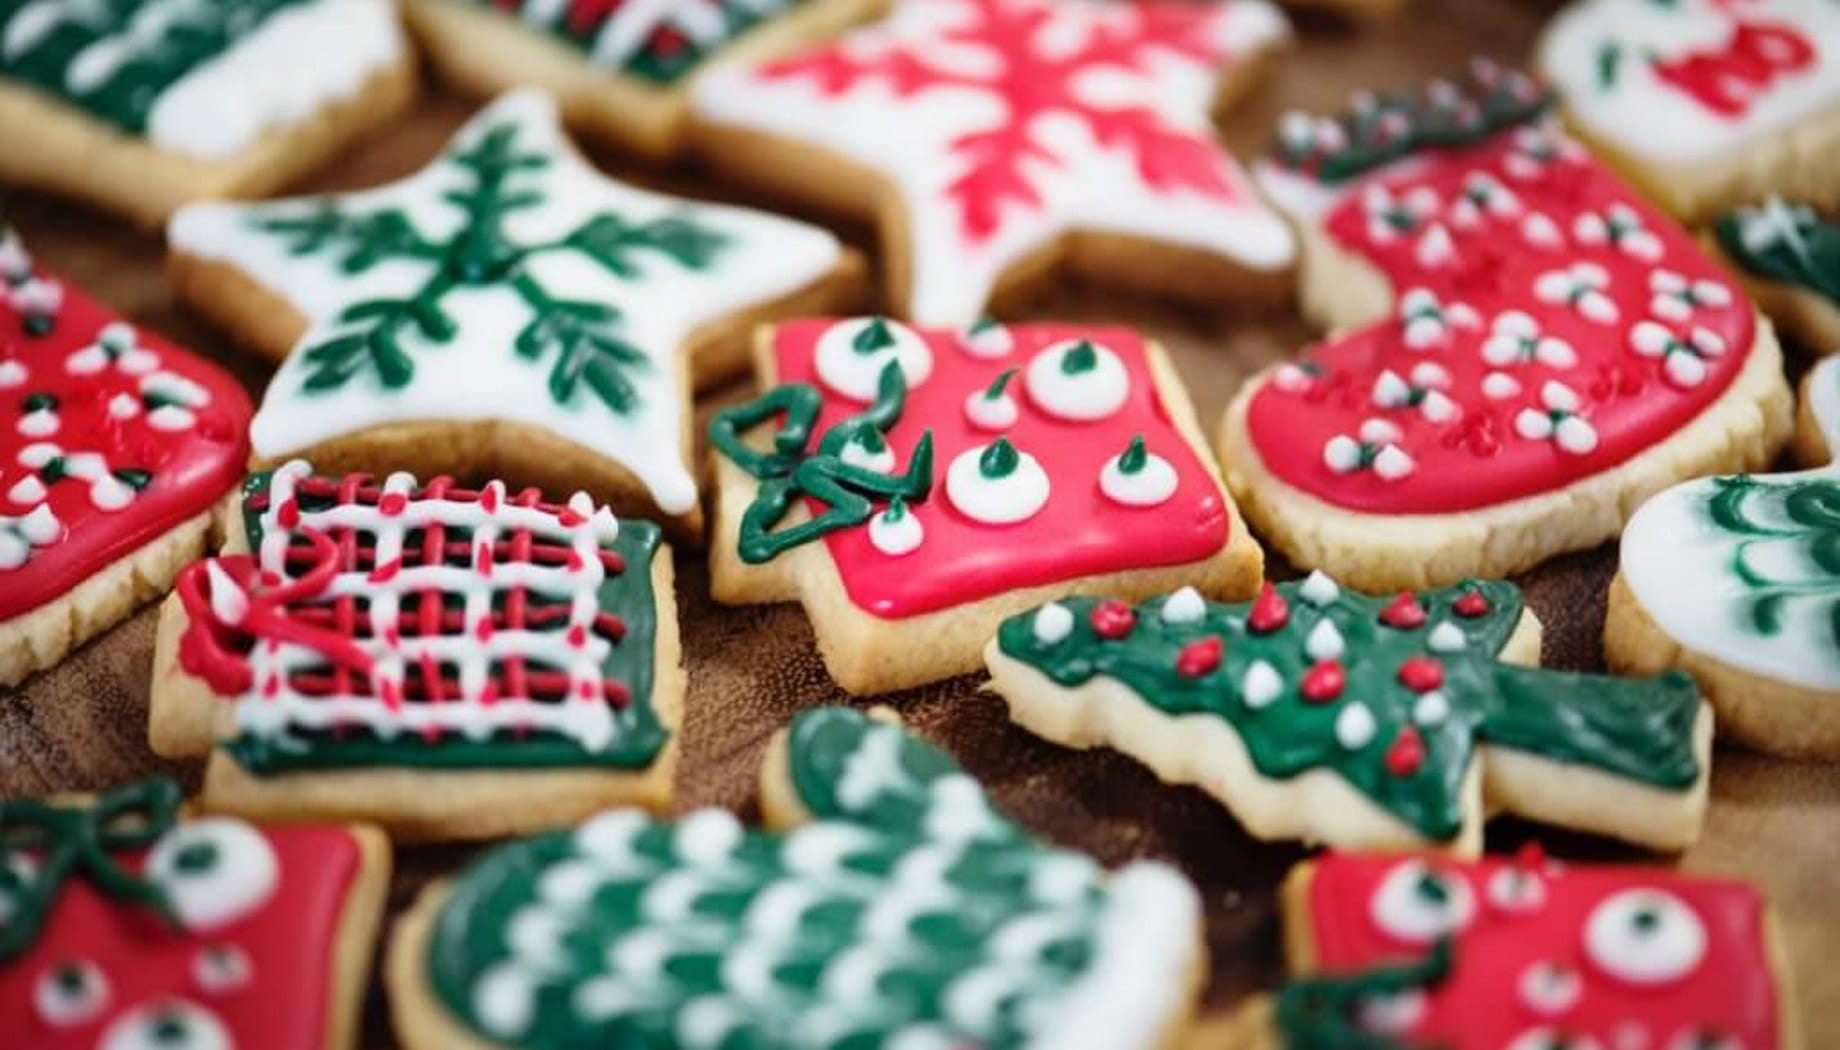 How To Decorate Christmas Cookies with Your Kids